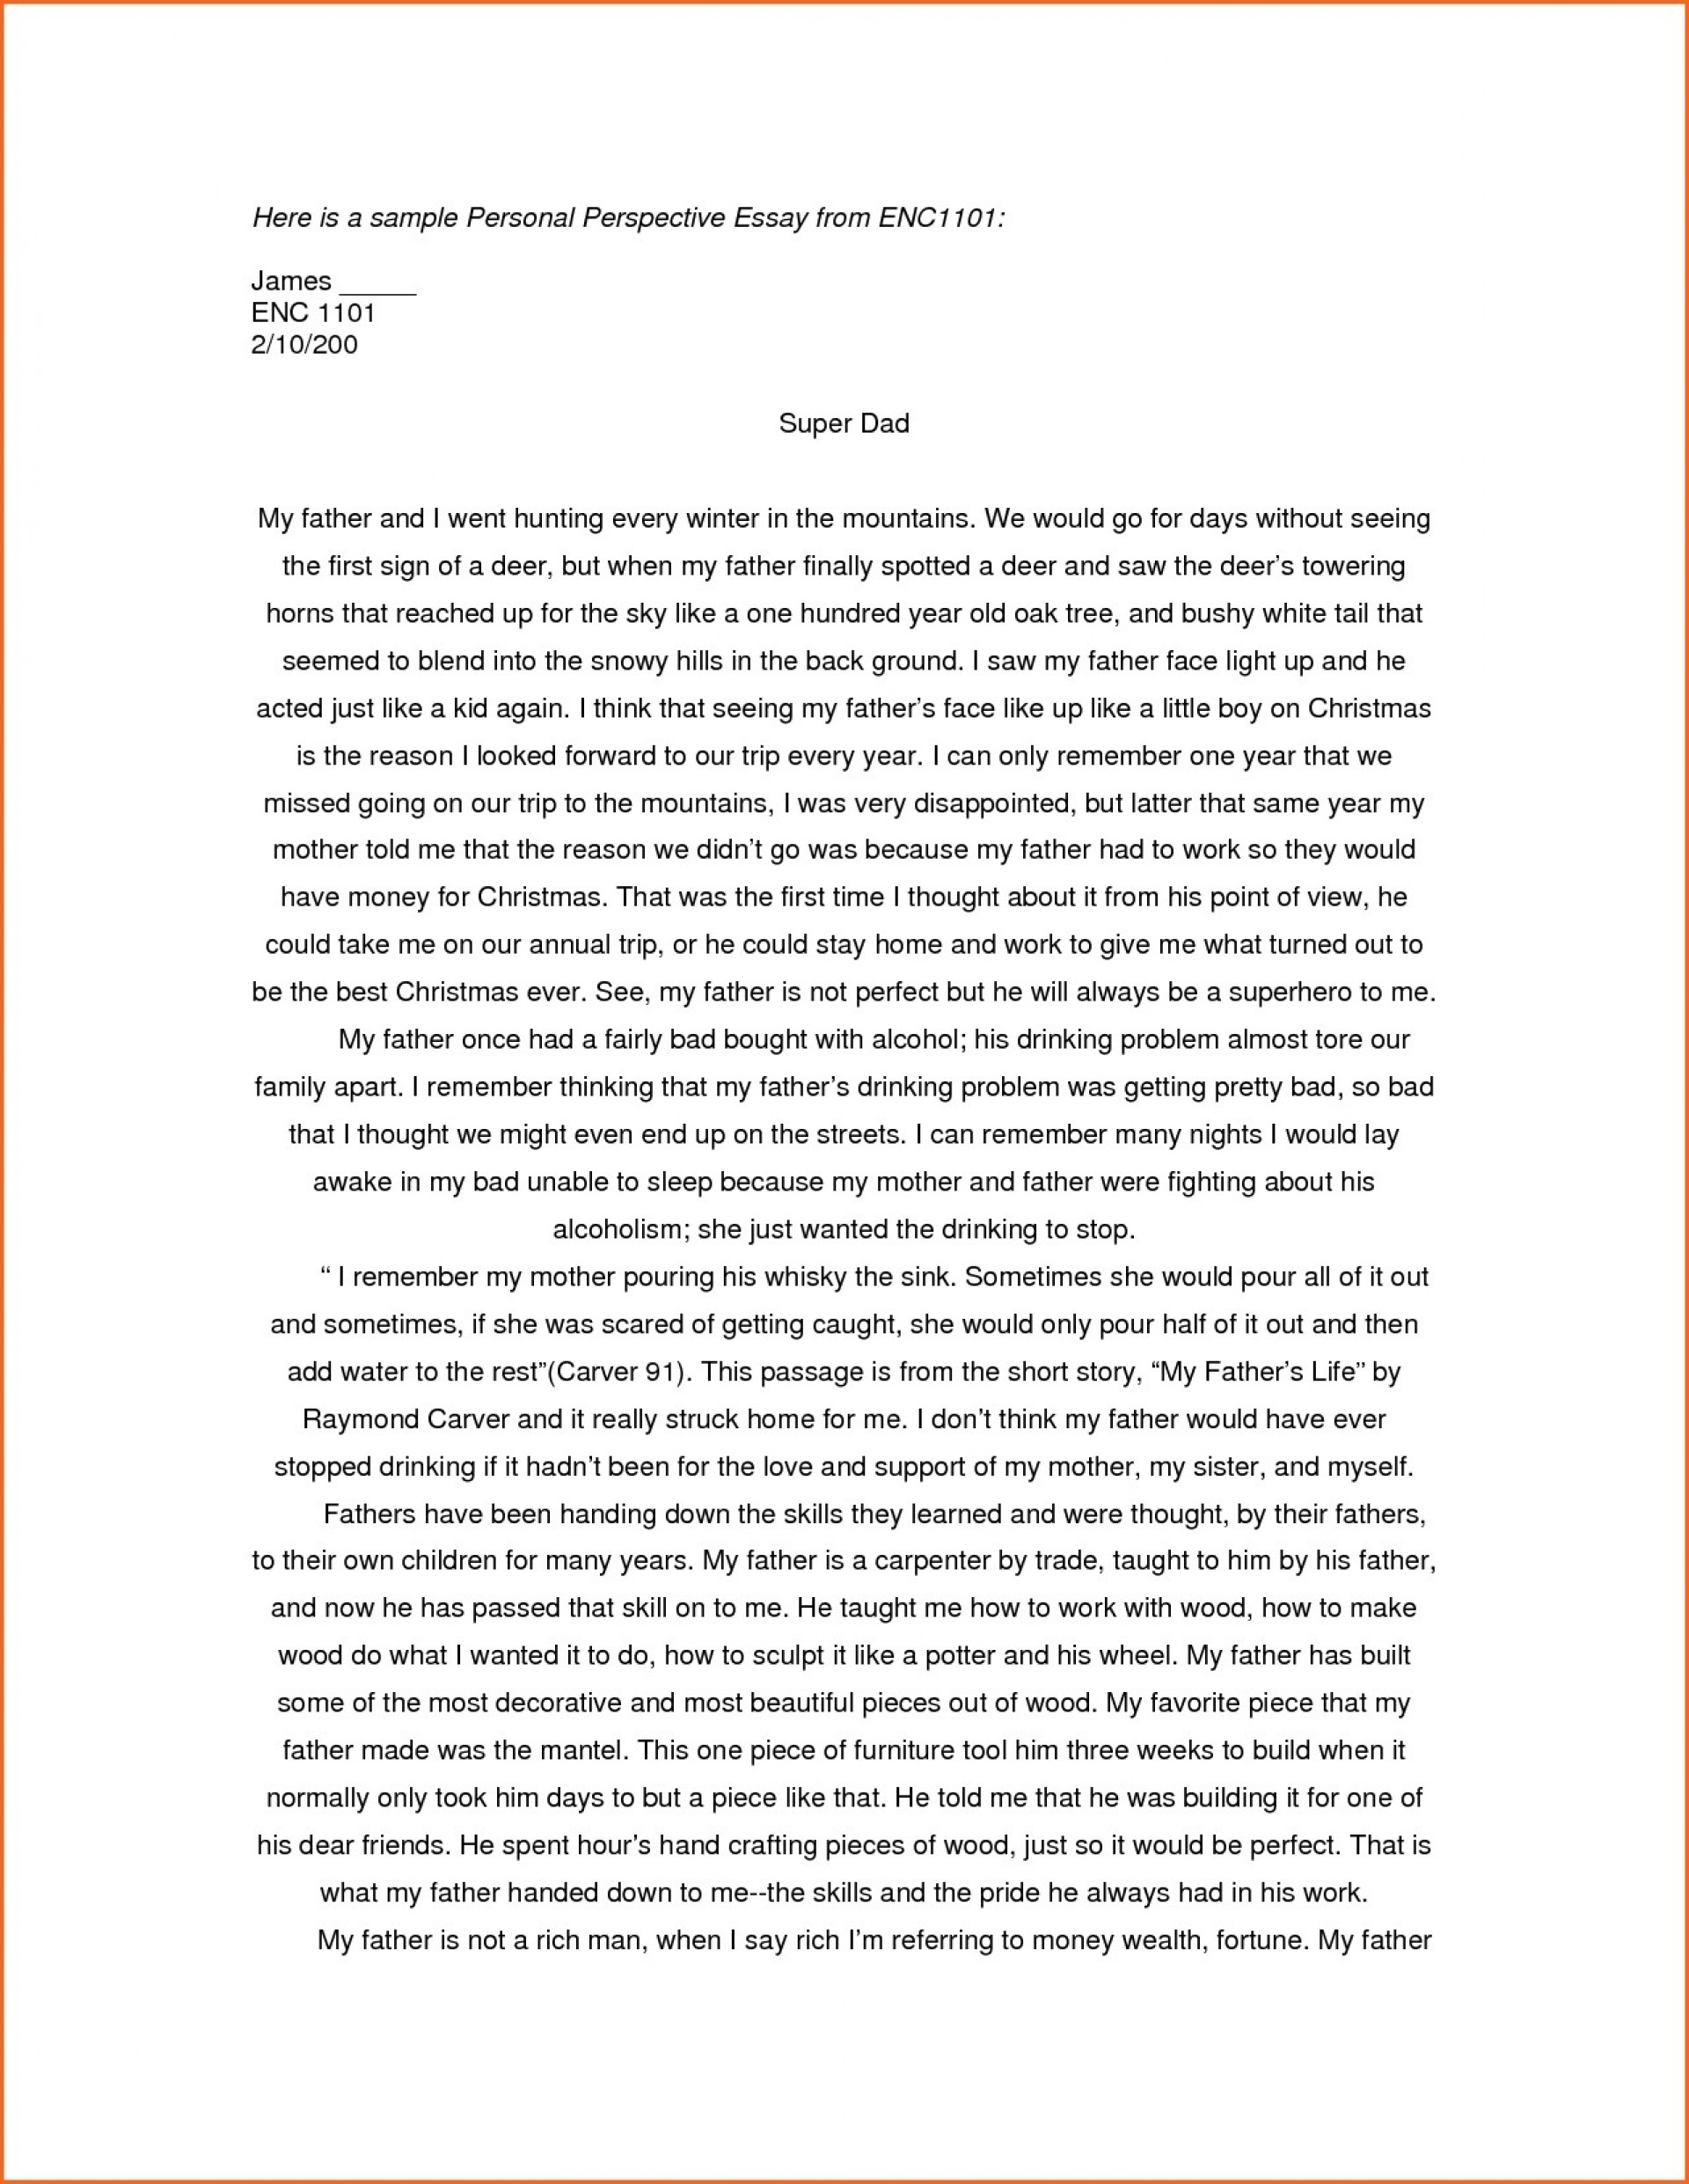 018 Example Of Personal Essay For College Application Examples Cover Letter Formidable Format Narrative Scholarships Samples Graduate School 1920